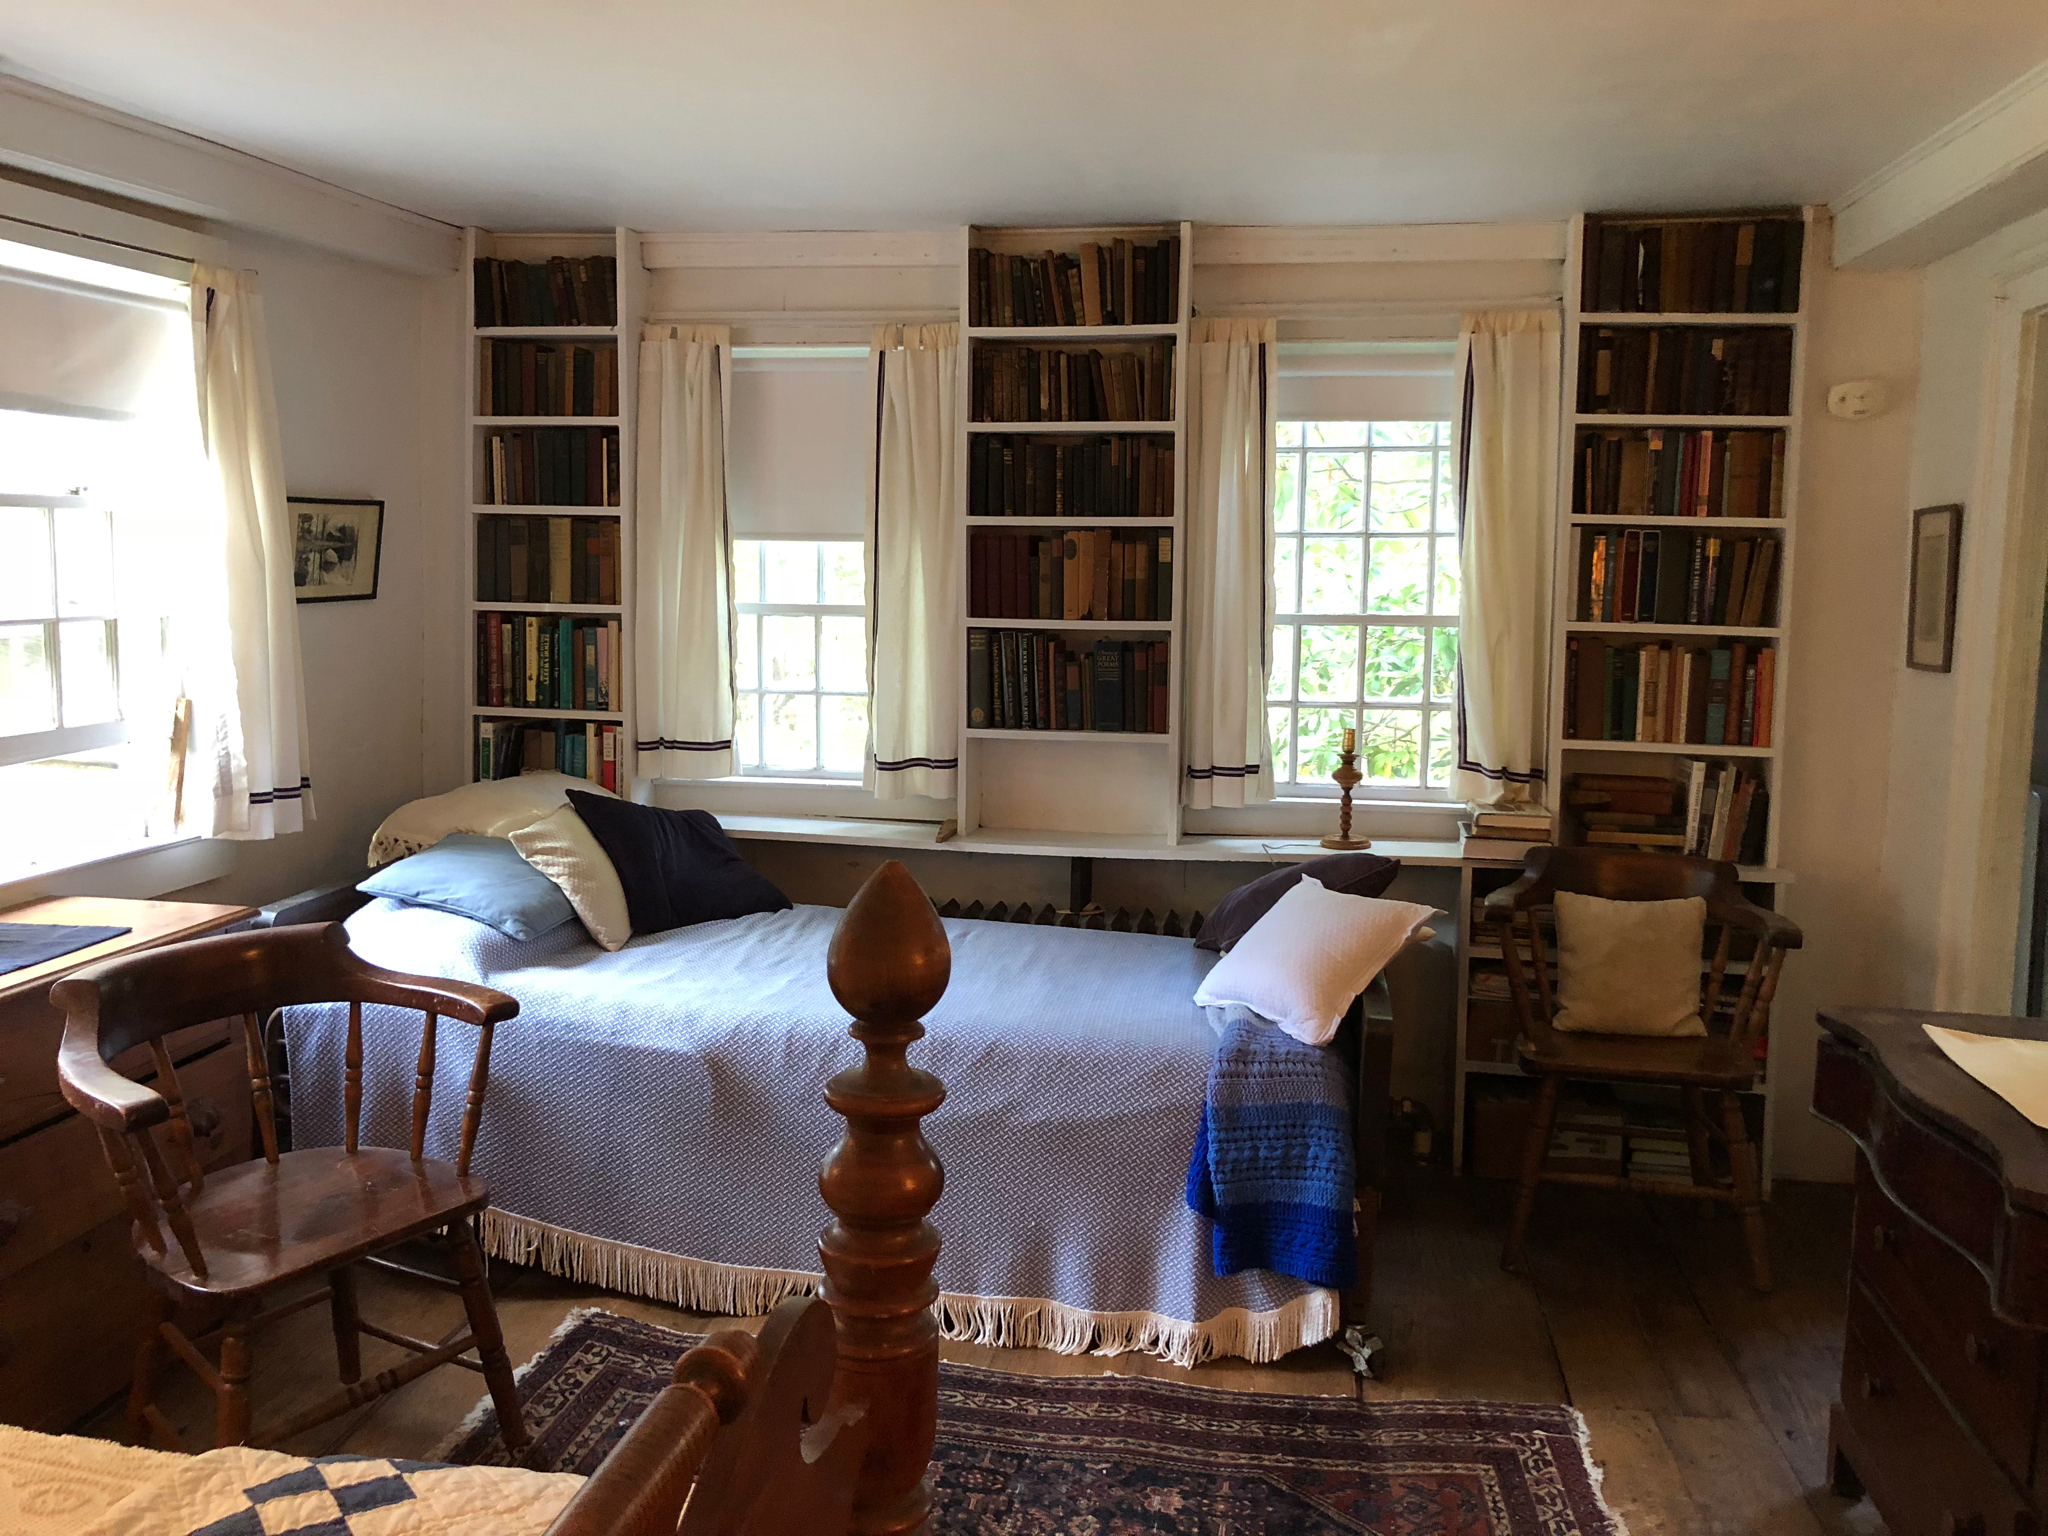 Nyc And Points North Day 5 Stopping To See A 300 Year Old Farm Called Stillmeadow The Pen Of A Ready Writer